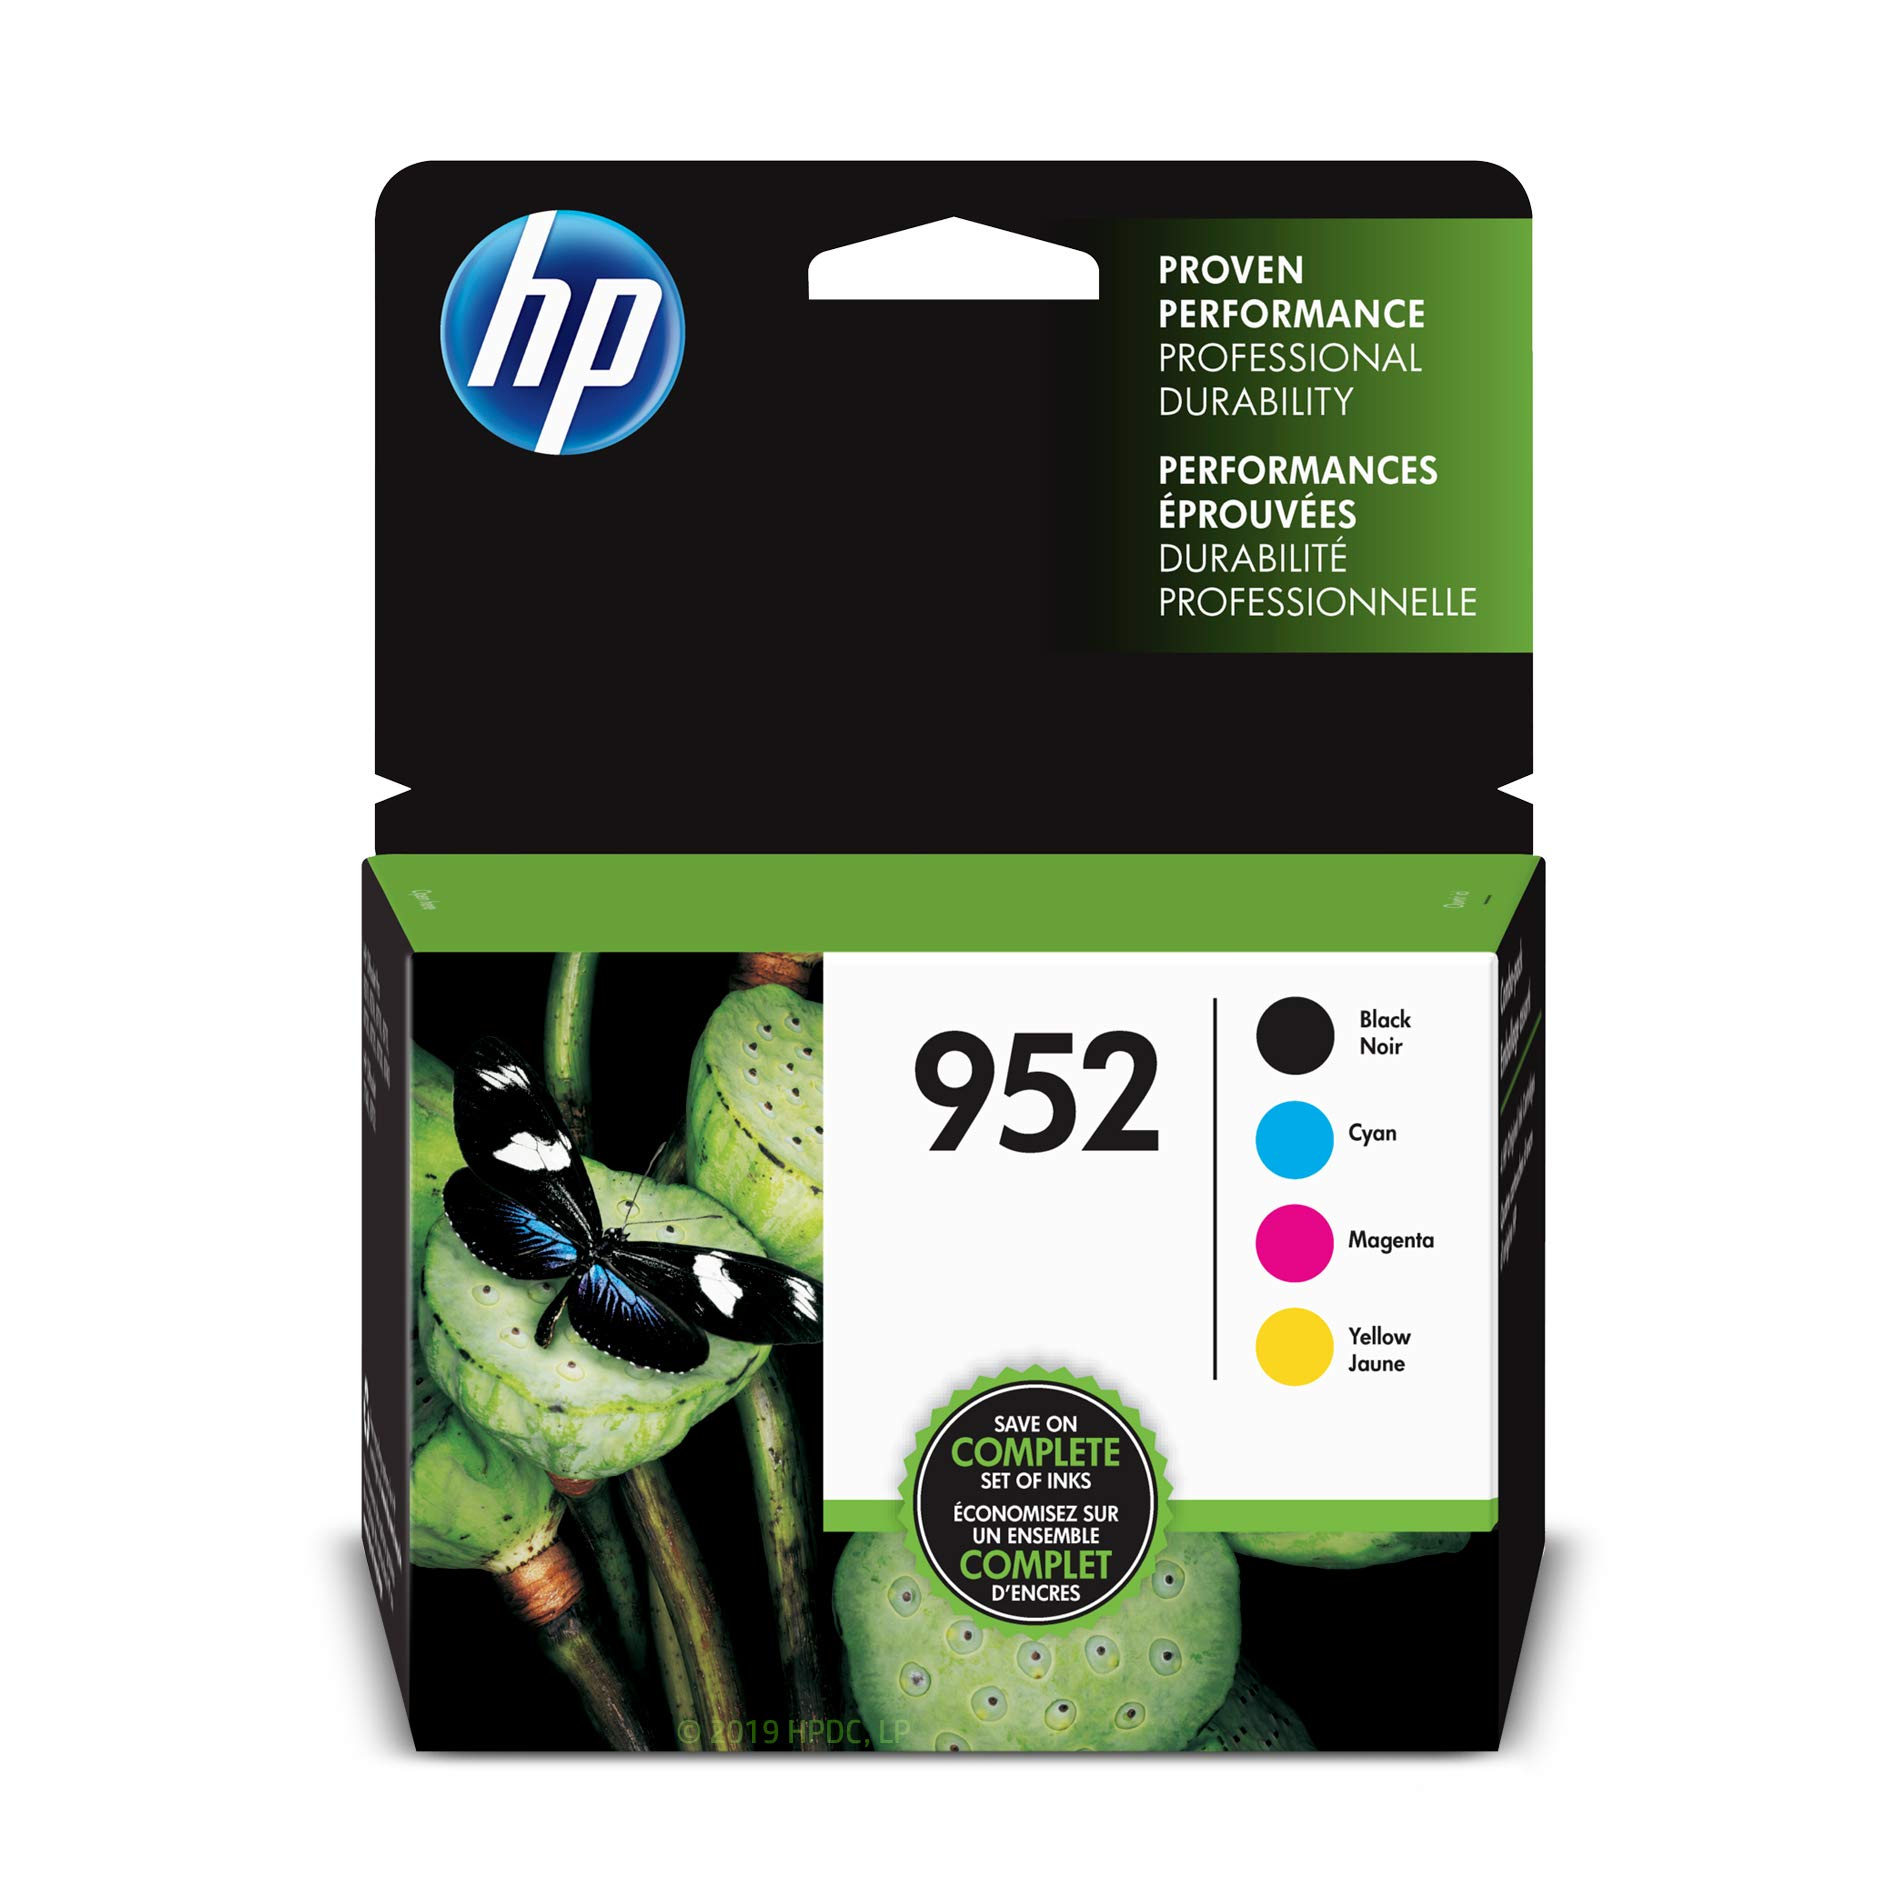 HP 952 Black, Cyan, Magenta & Yellow Ink Cartridges, 4 Cartridges (F6U15AN, L0S49AN, L0S52AN,L0S55AN)